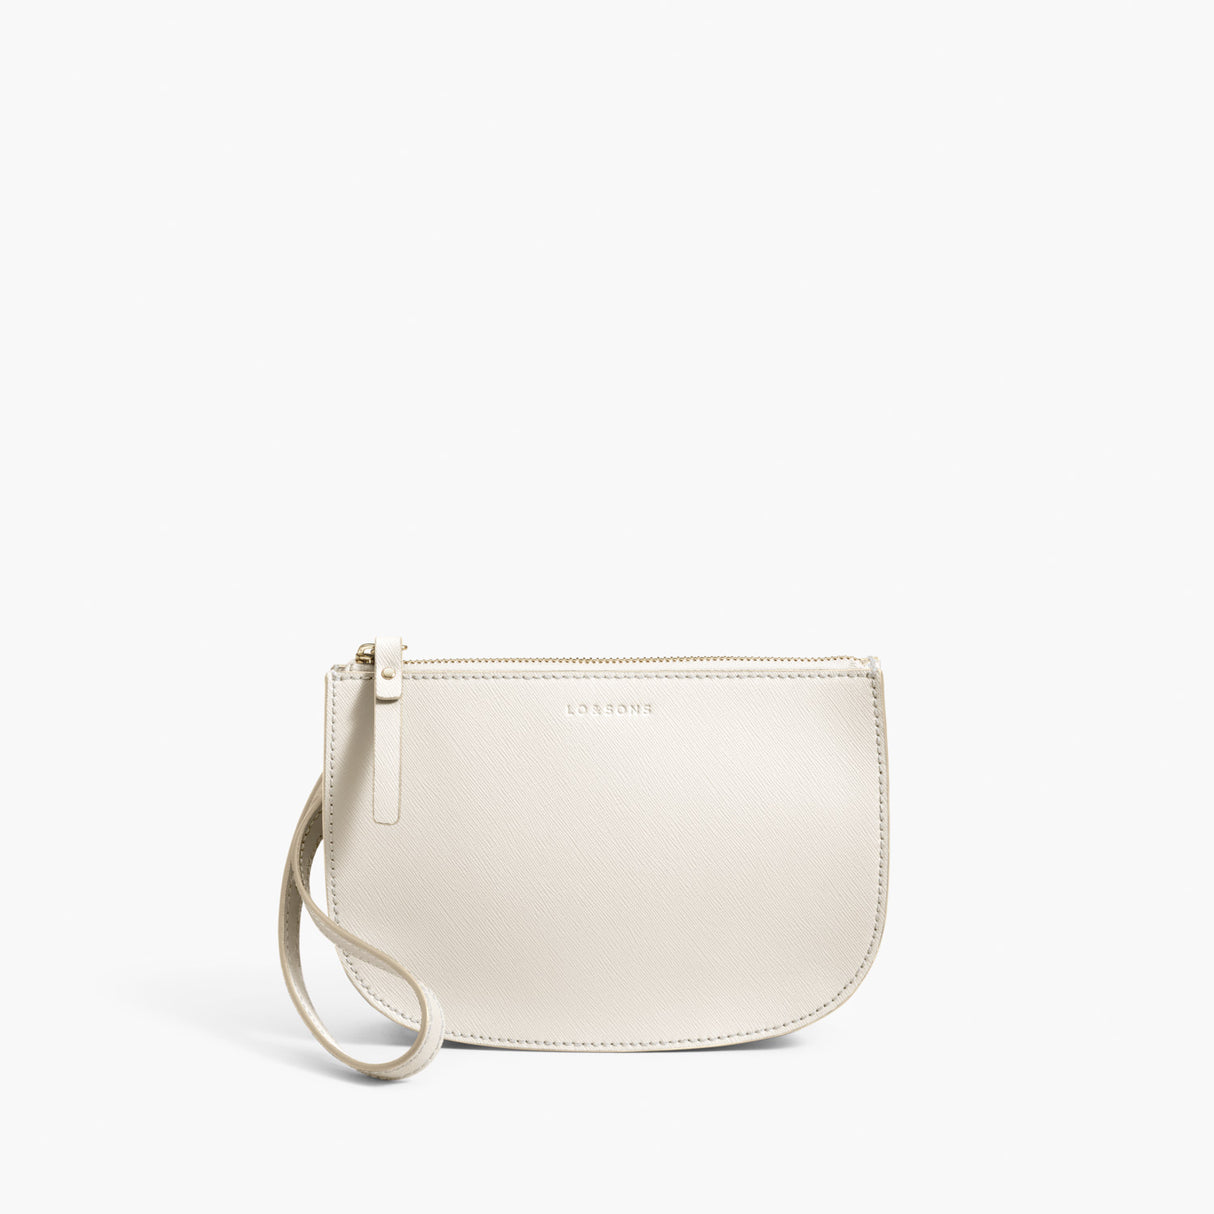 Wristlet Crossbody - The Waverley 2 - Saffiano Leather - Ivory / Gold / Camel - Crossbody - Lo & Sons